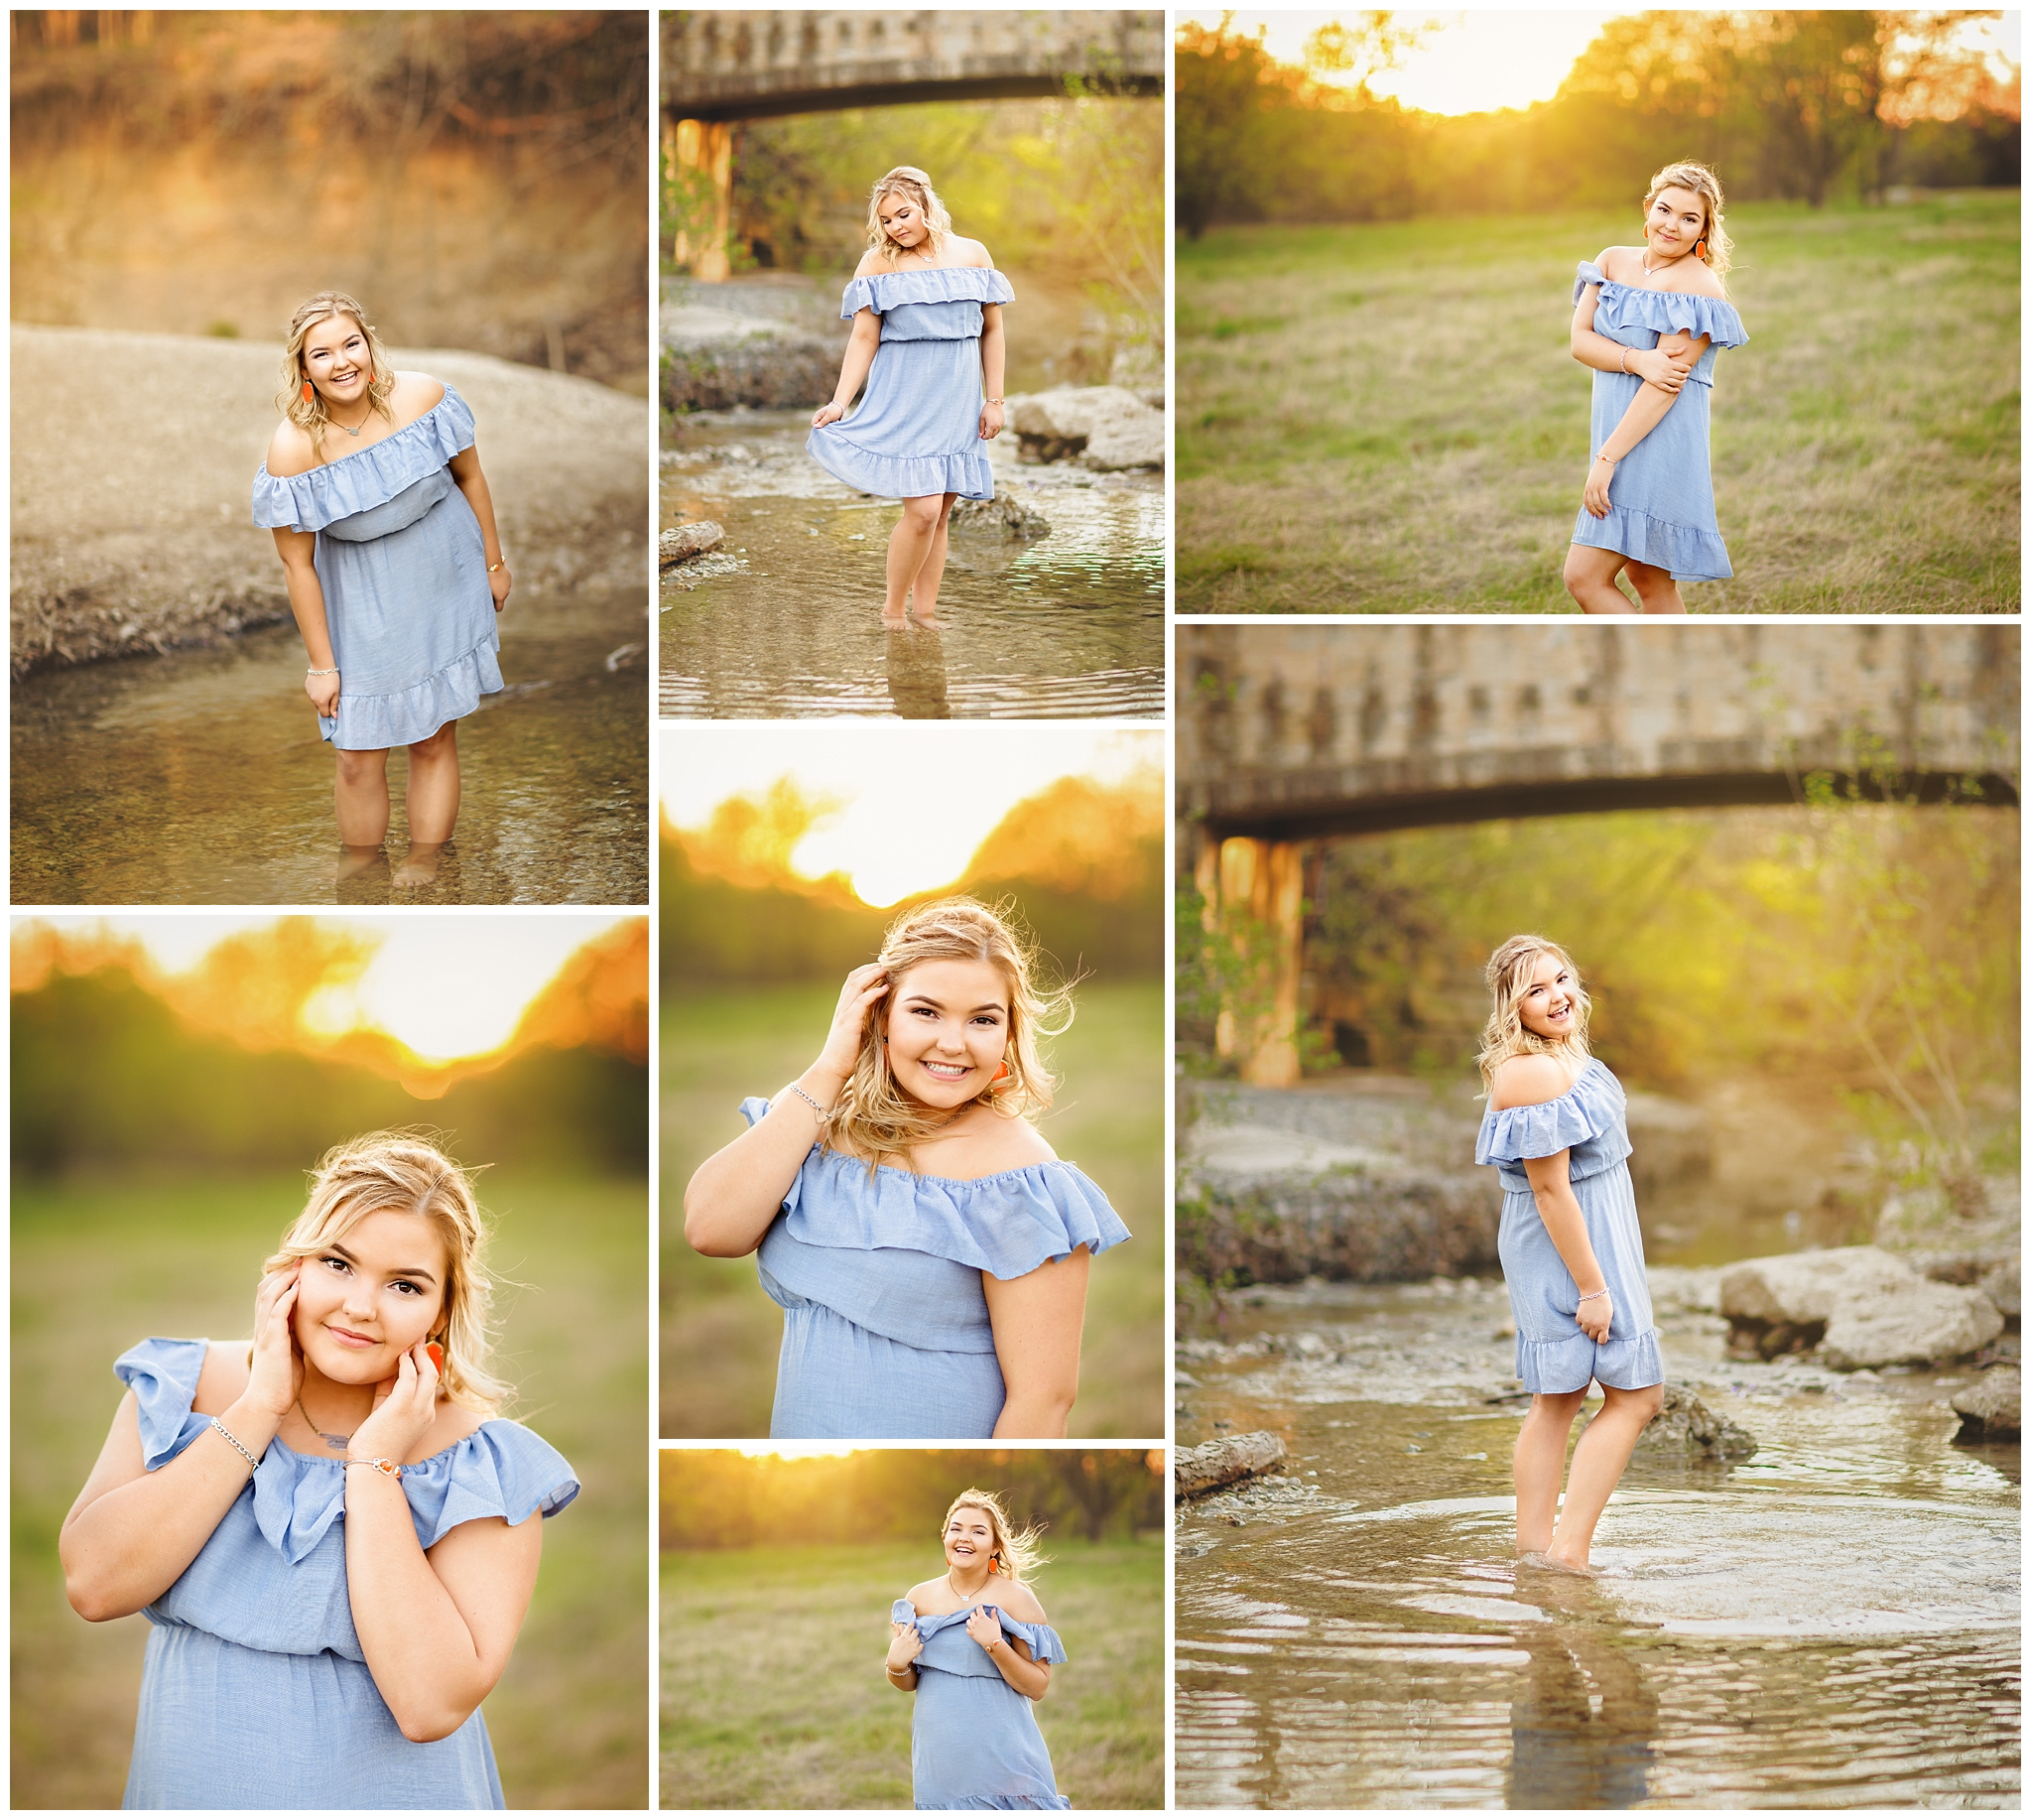 kylee-swisher-photography-texas-senior-photographer-tx-dfw-fort-worth